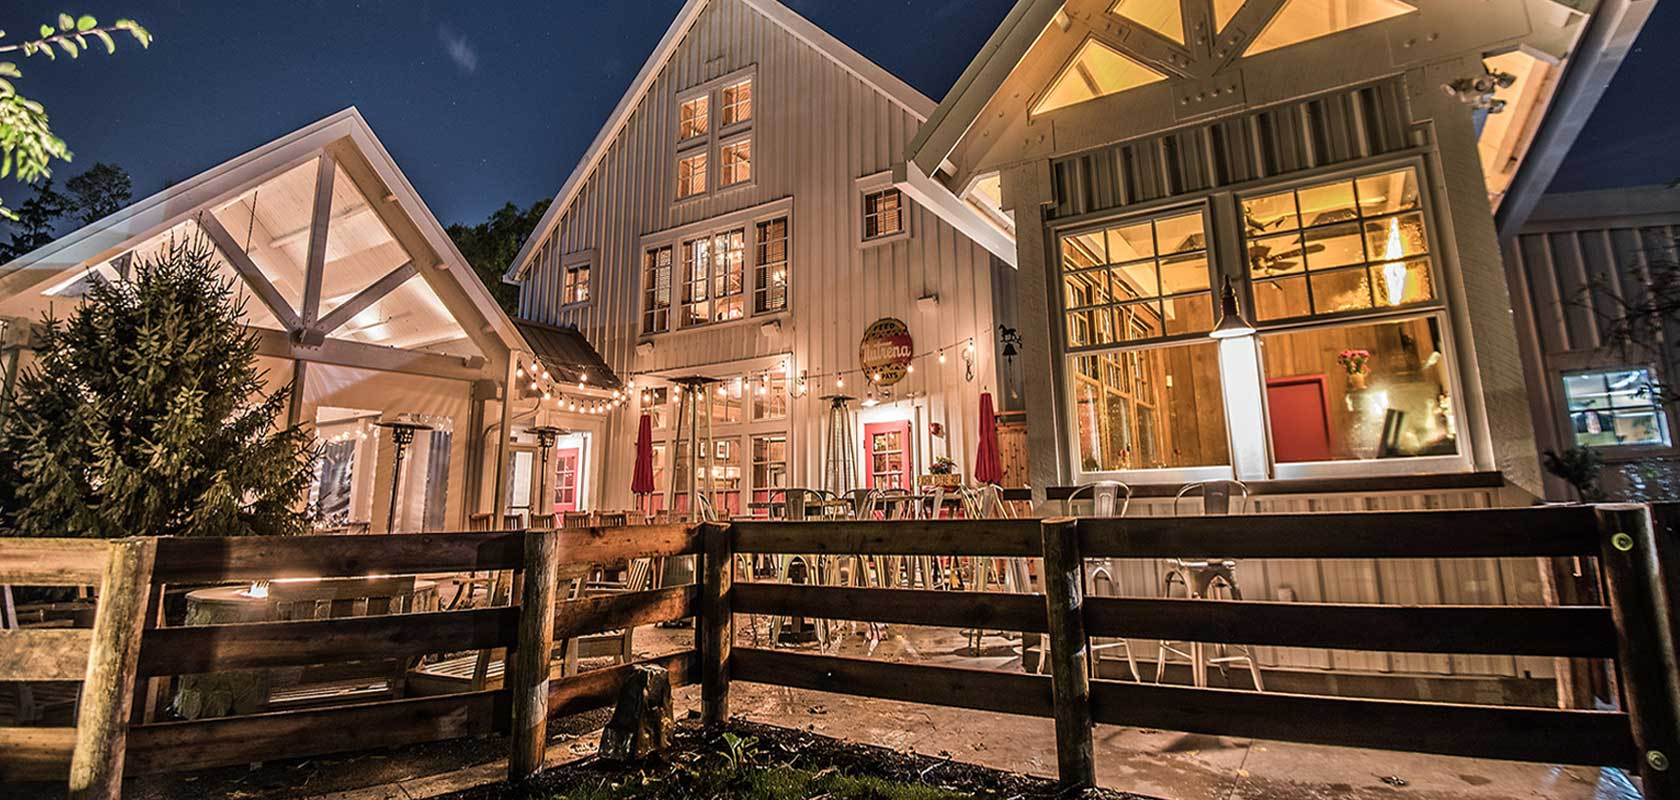 The Barn exterior seating